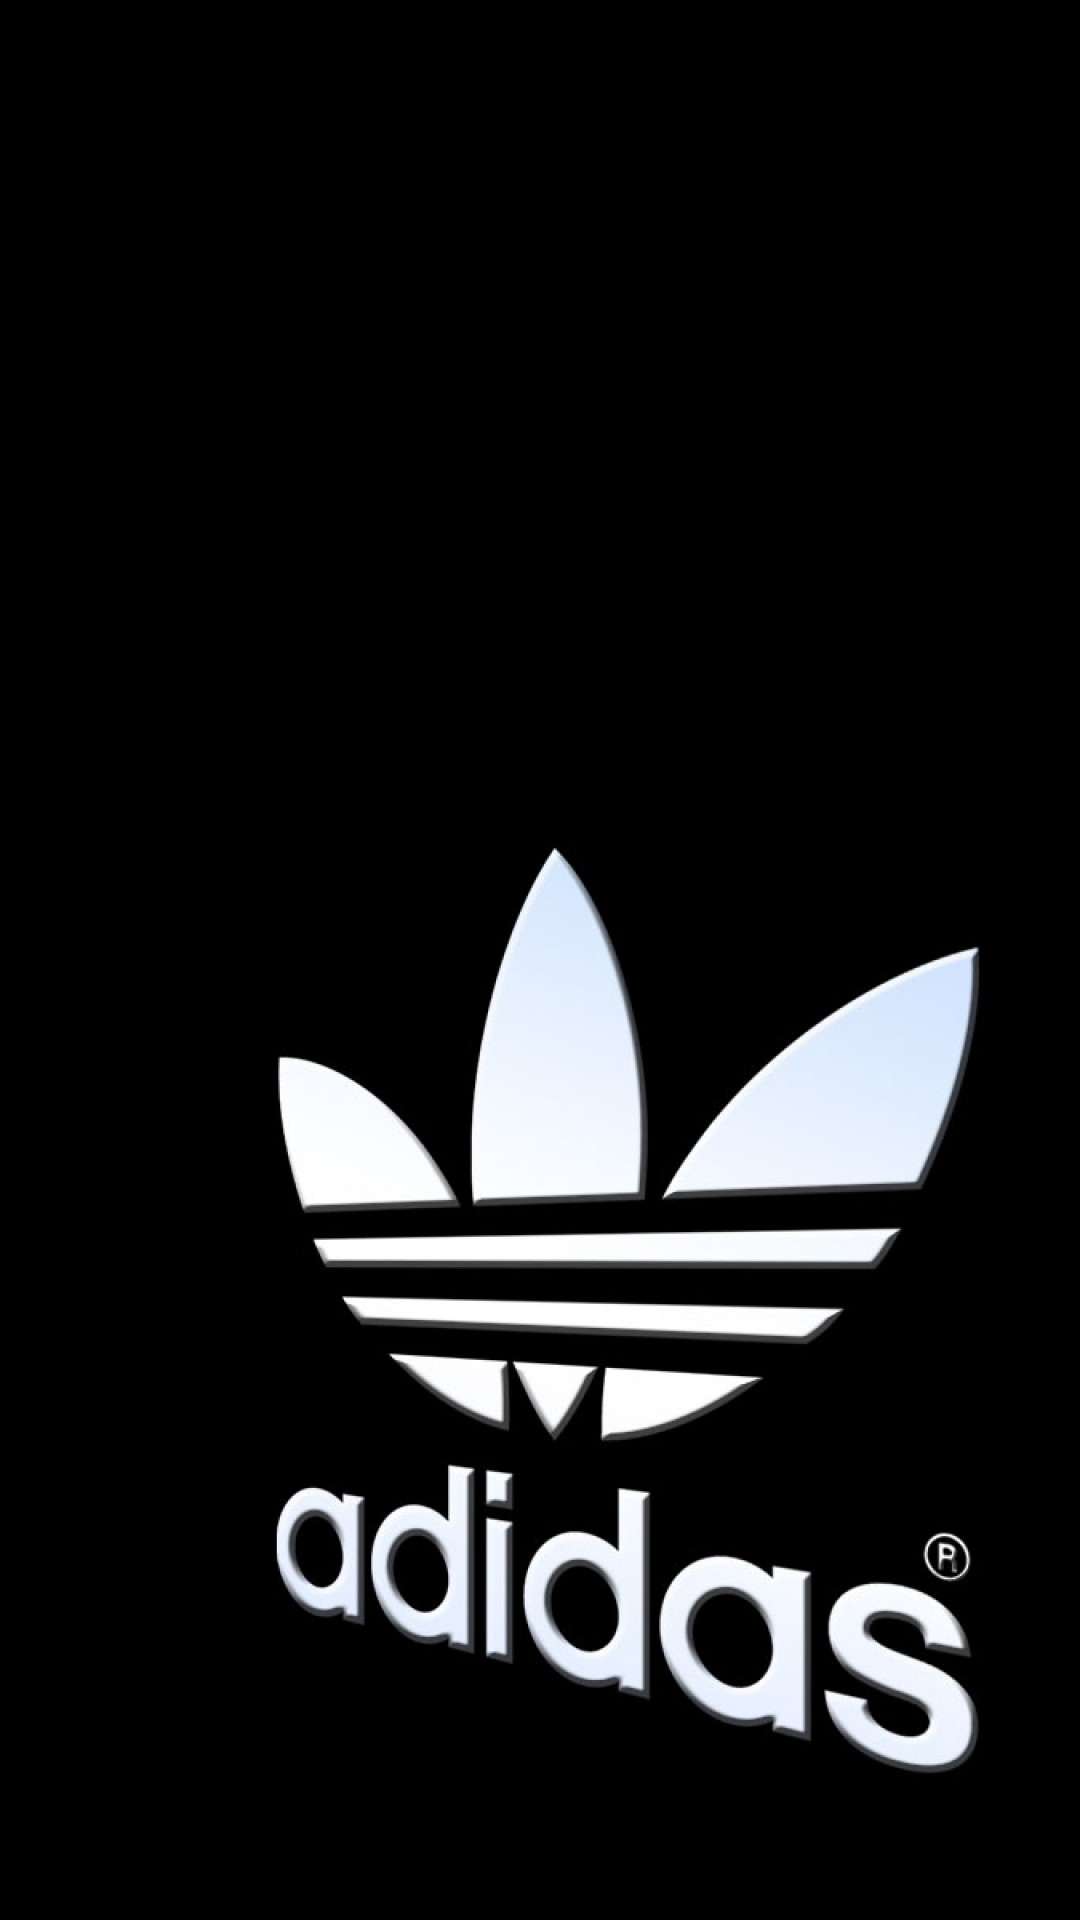 1080x1920, Adidas Wallpapers For Iphone 7, Iphone 7 - Adidas - HD Wallpaper